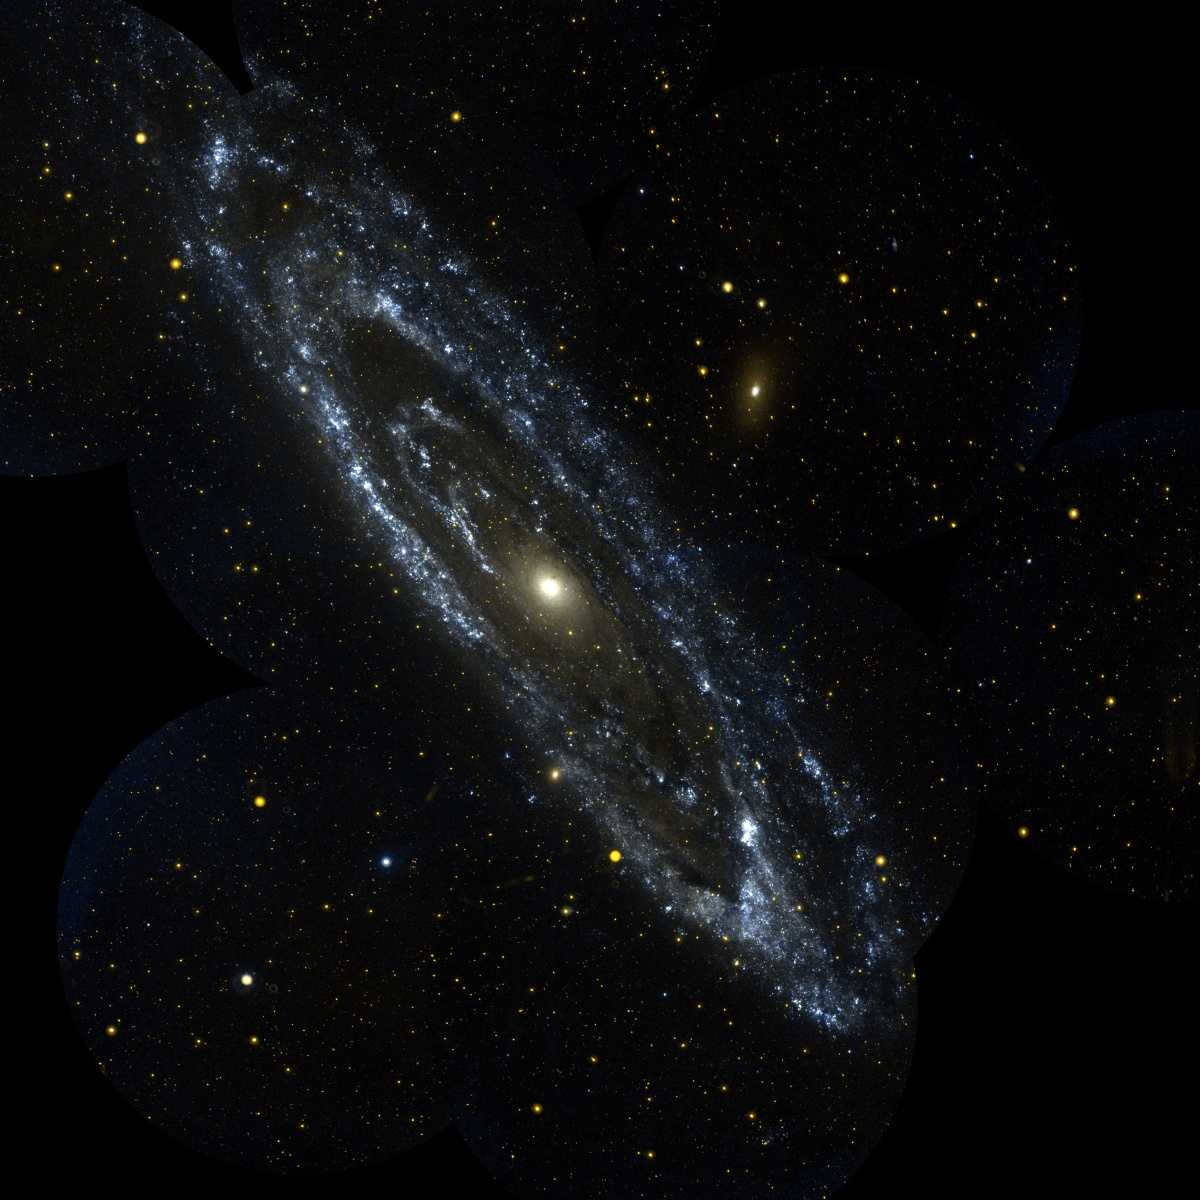 APOD: 2003 December 22 - The Andromeda Galaxy from GALEX